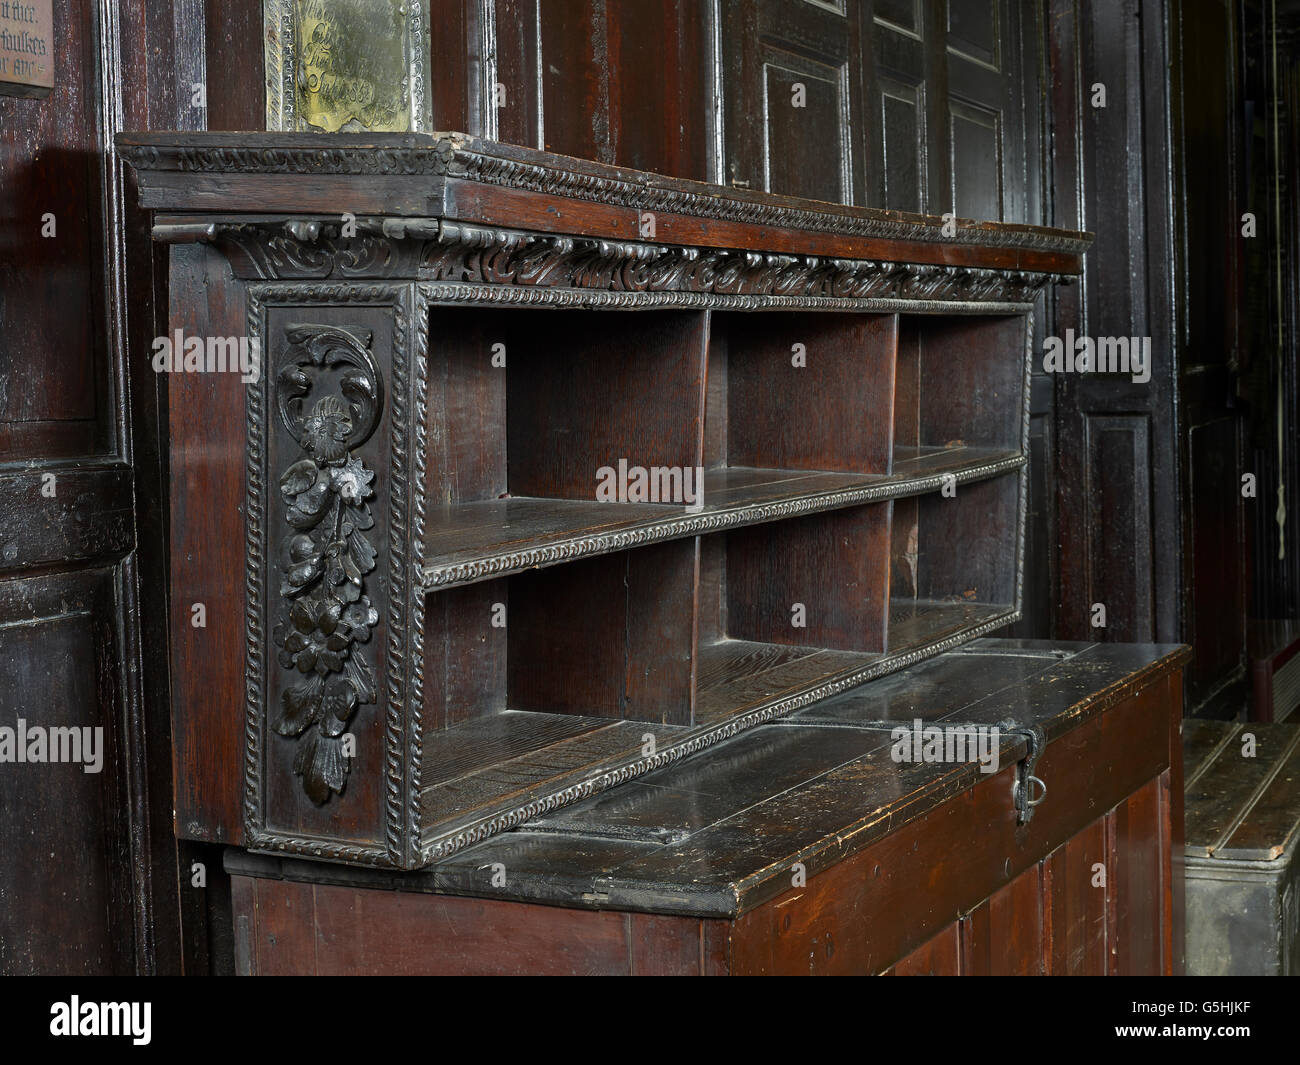 St Martin within Ludgate, church in the City of London,  bread shelves - Stock Image